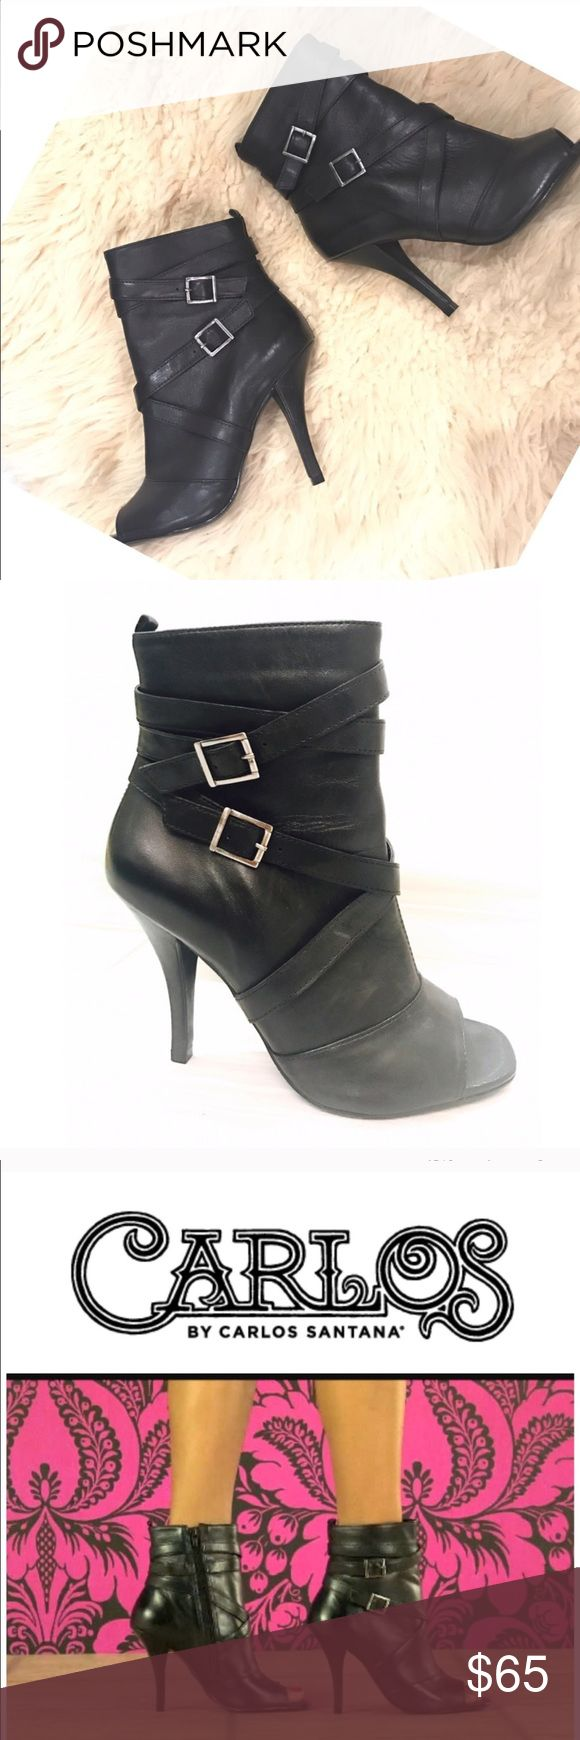 "Carlos Santana Bota  Leather Booties Ankle Boots Carlos Santana Bota Black Leather Booties Ankle Boots 6.5 medium 4"" heel,  straps , buckle accents. Peep toe. Carlos Santana Shoes Ankle Boots & Booties"